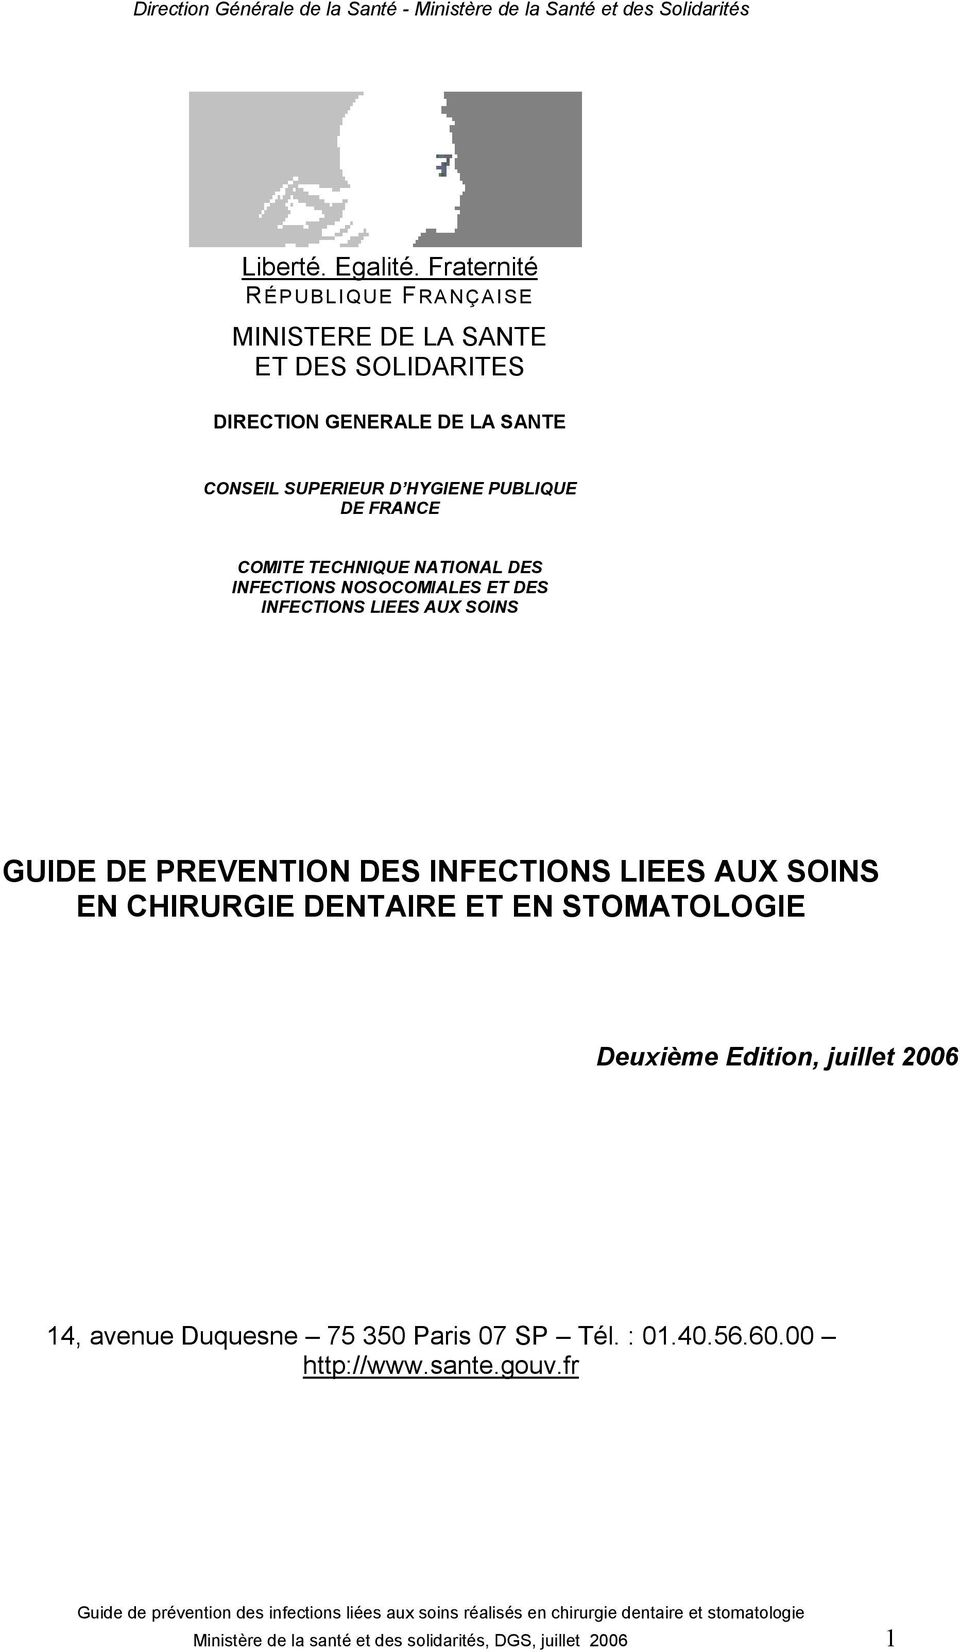 PUBLIQUE DE FRANCE COMITE TECHNIQUE NATIONAL DES INFECTIONS NOSOCOMIALES ET DES INFECTIONS LIEES AUX SOINS GUIDE DE PREVENTION DES